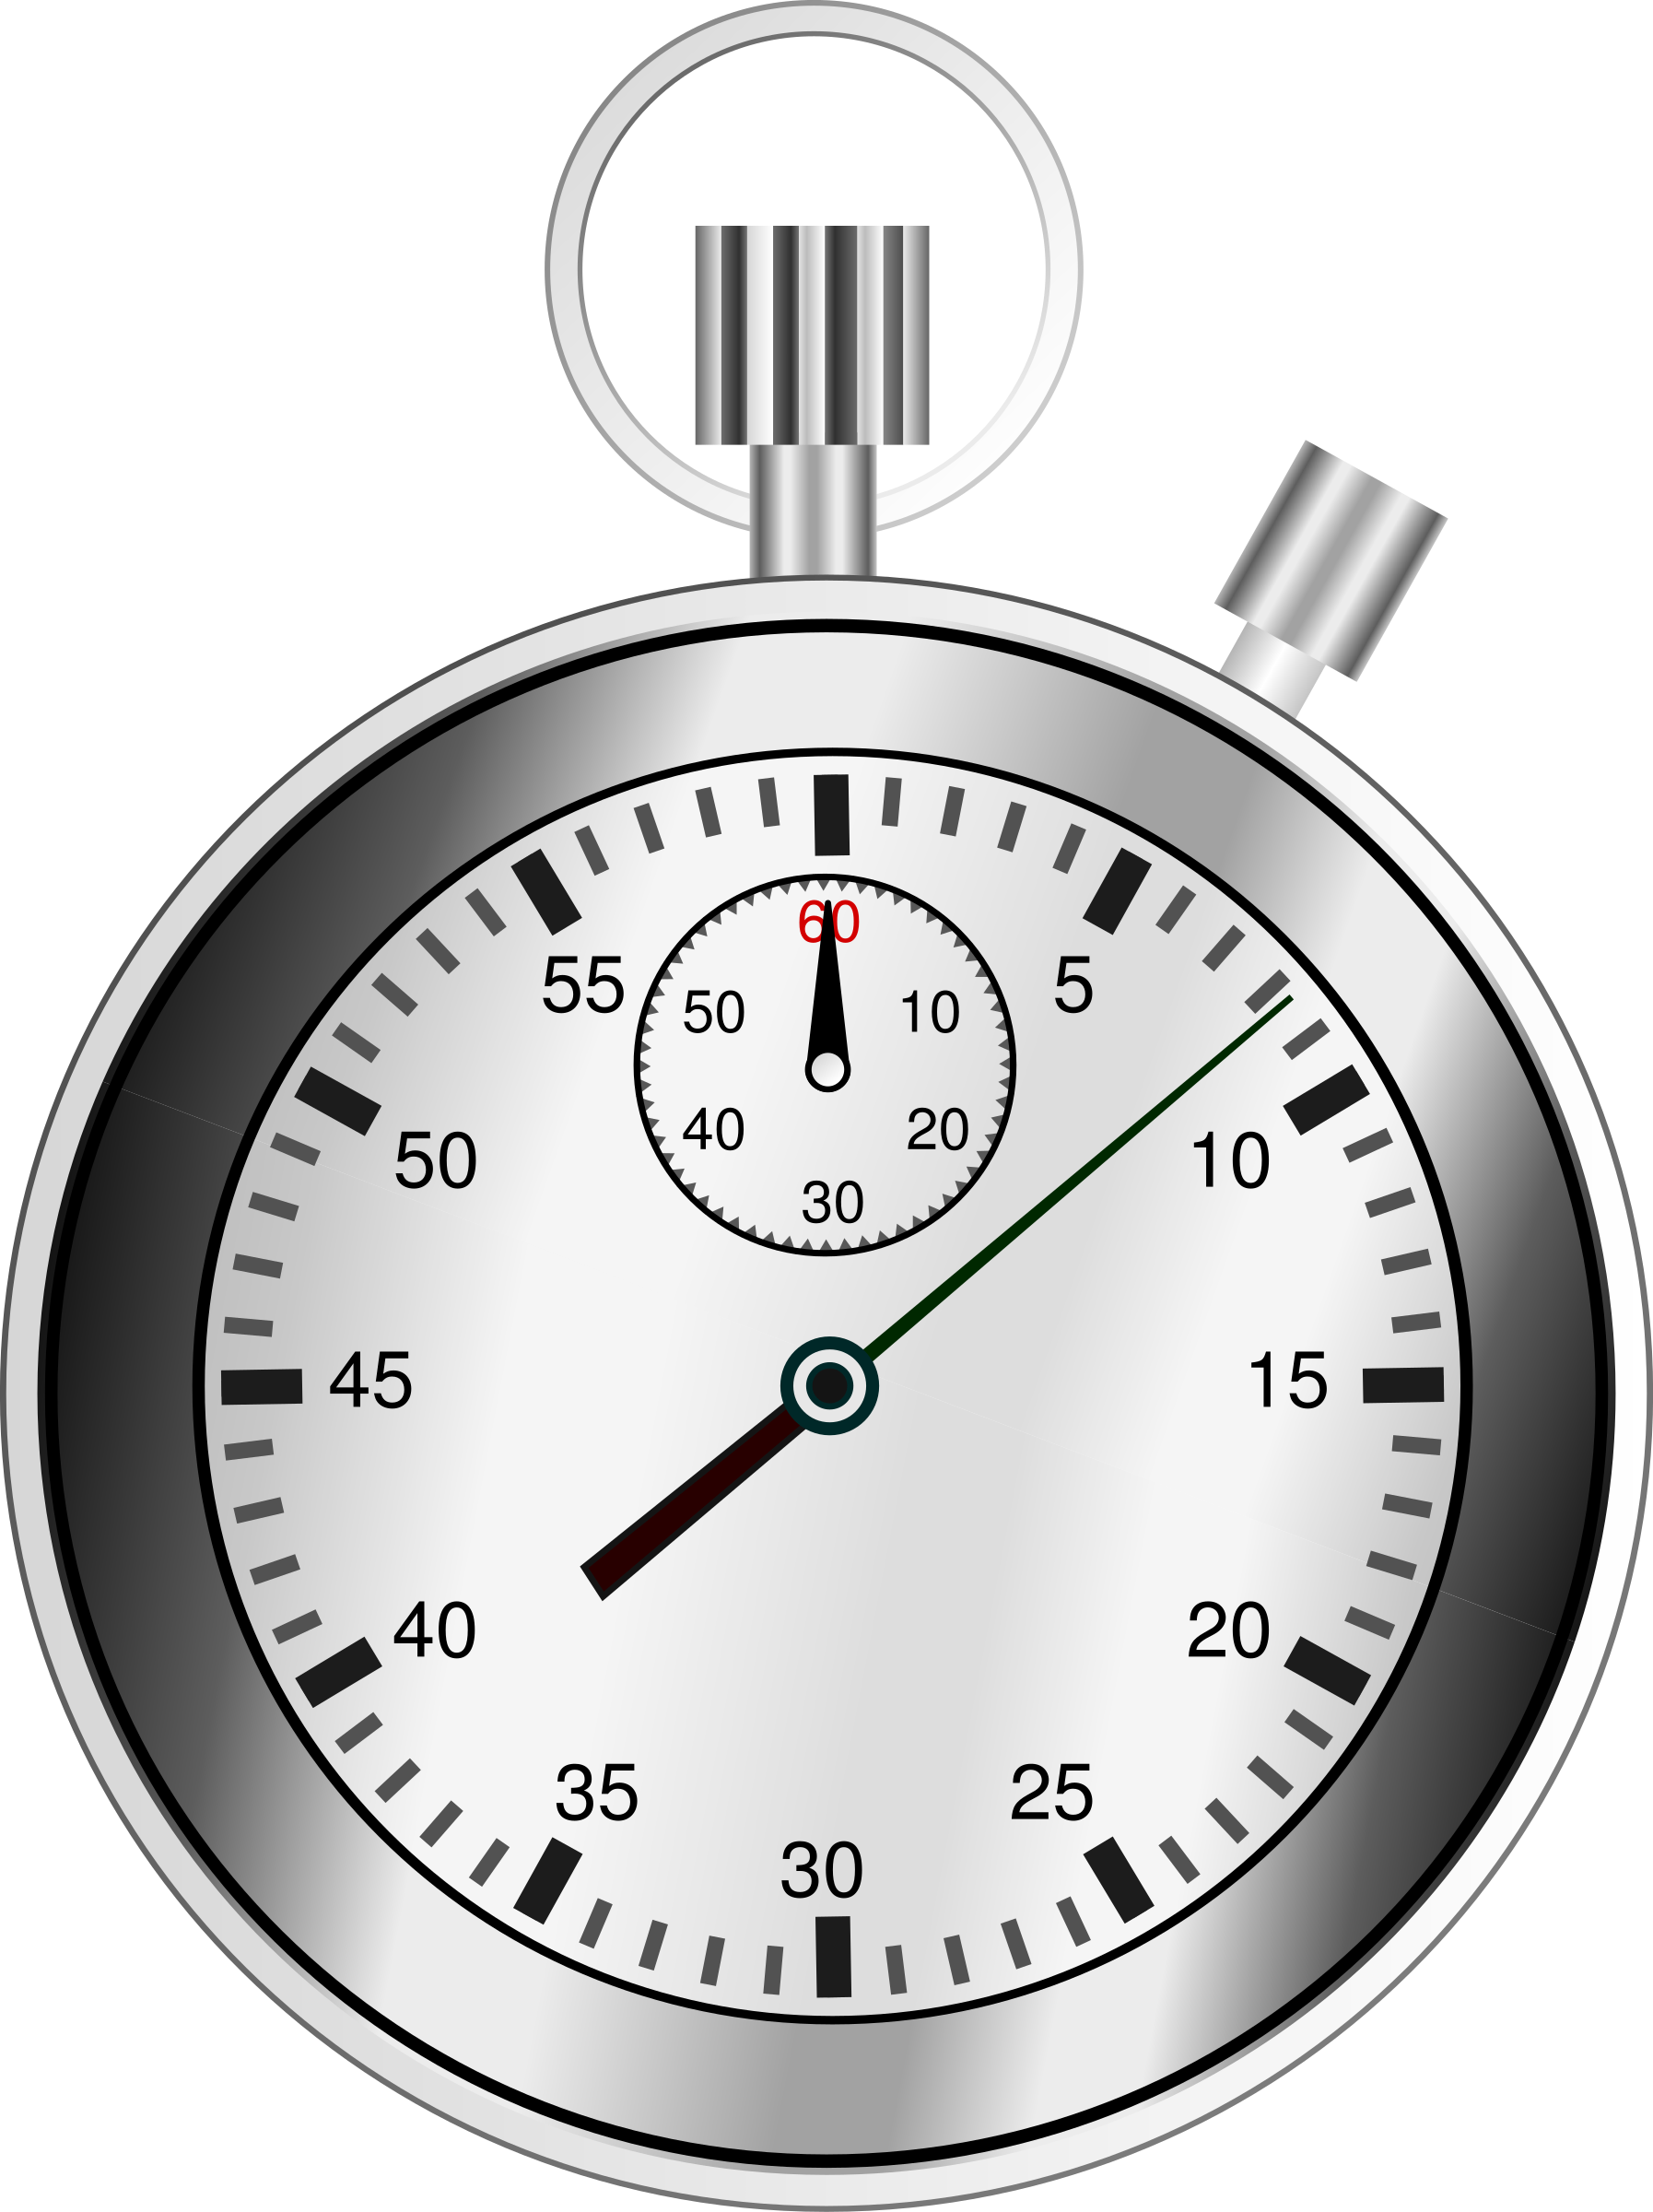 Transparent stopwatch. Stop watch png picture